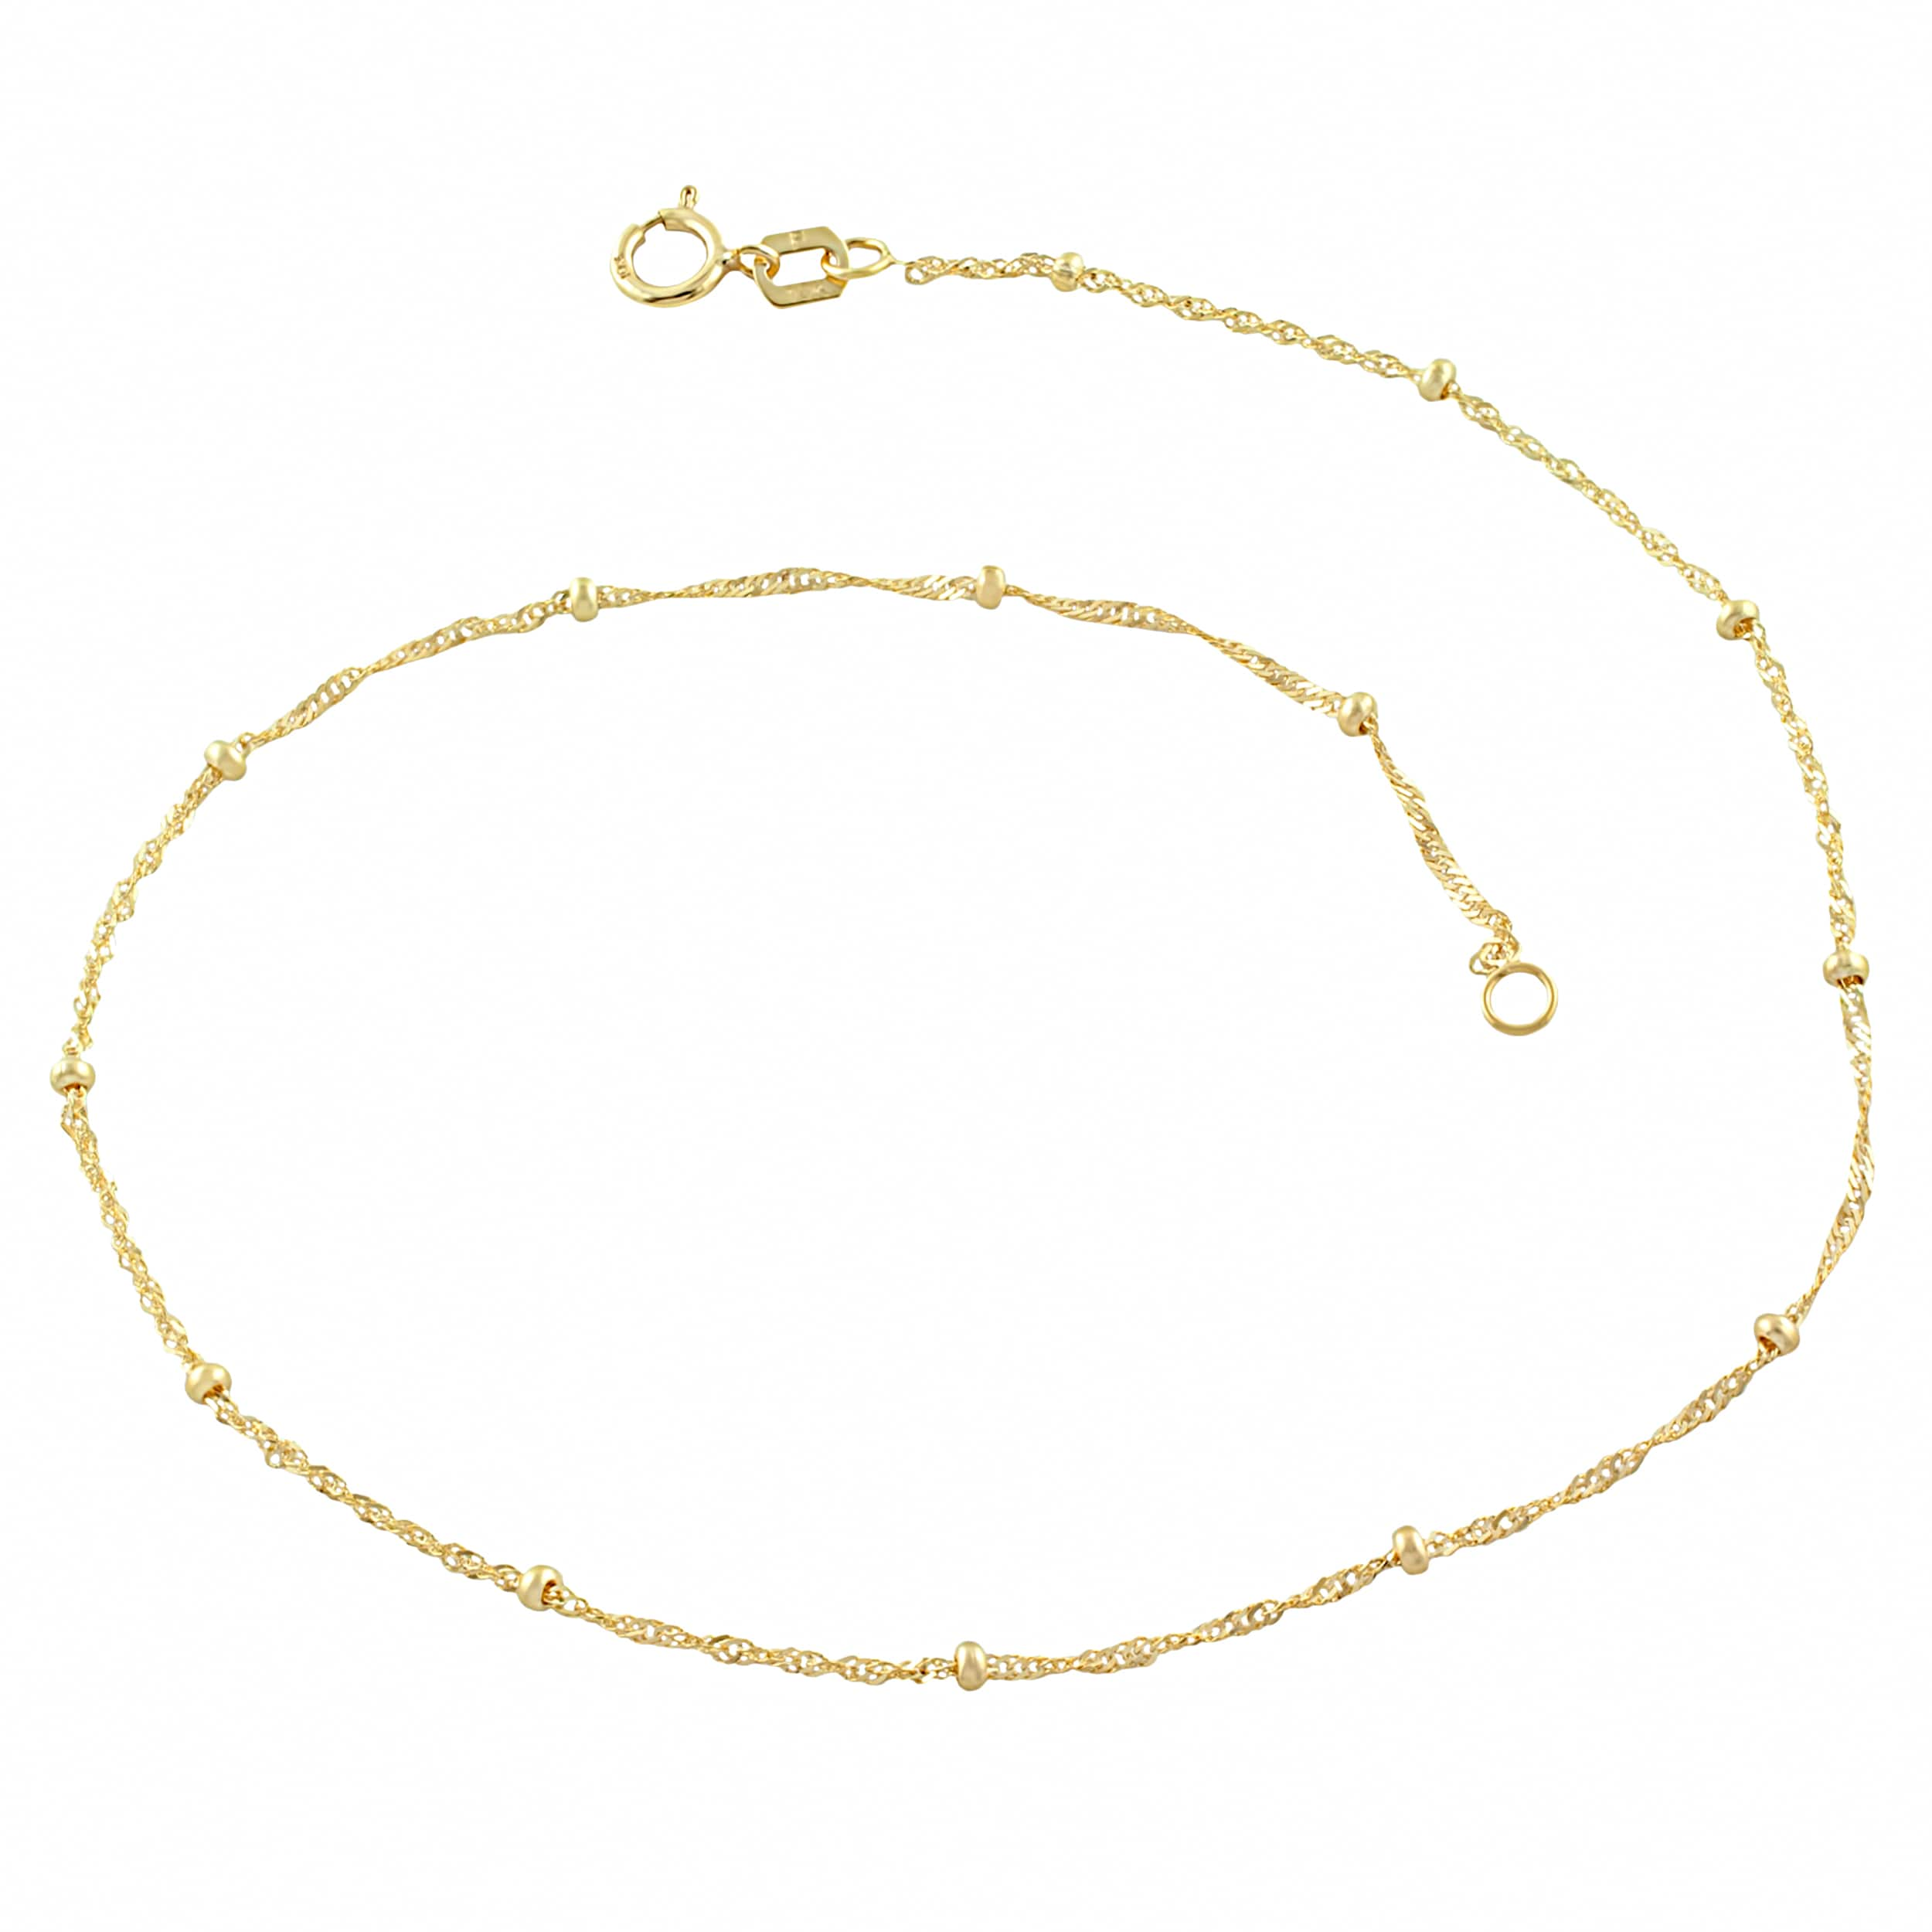 malabar wedding mhaaaaabbedw gold buy yellow women anklet occasion gifts diamonds for online